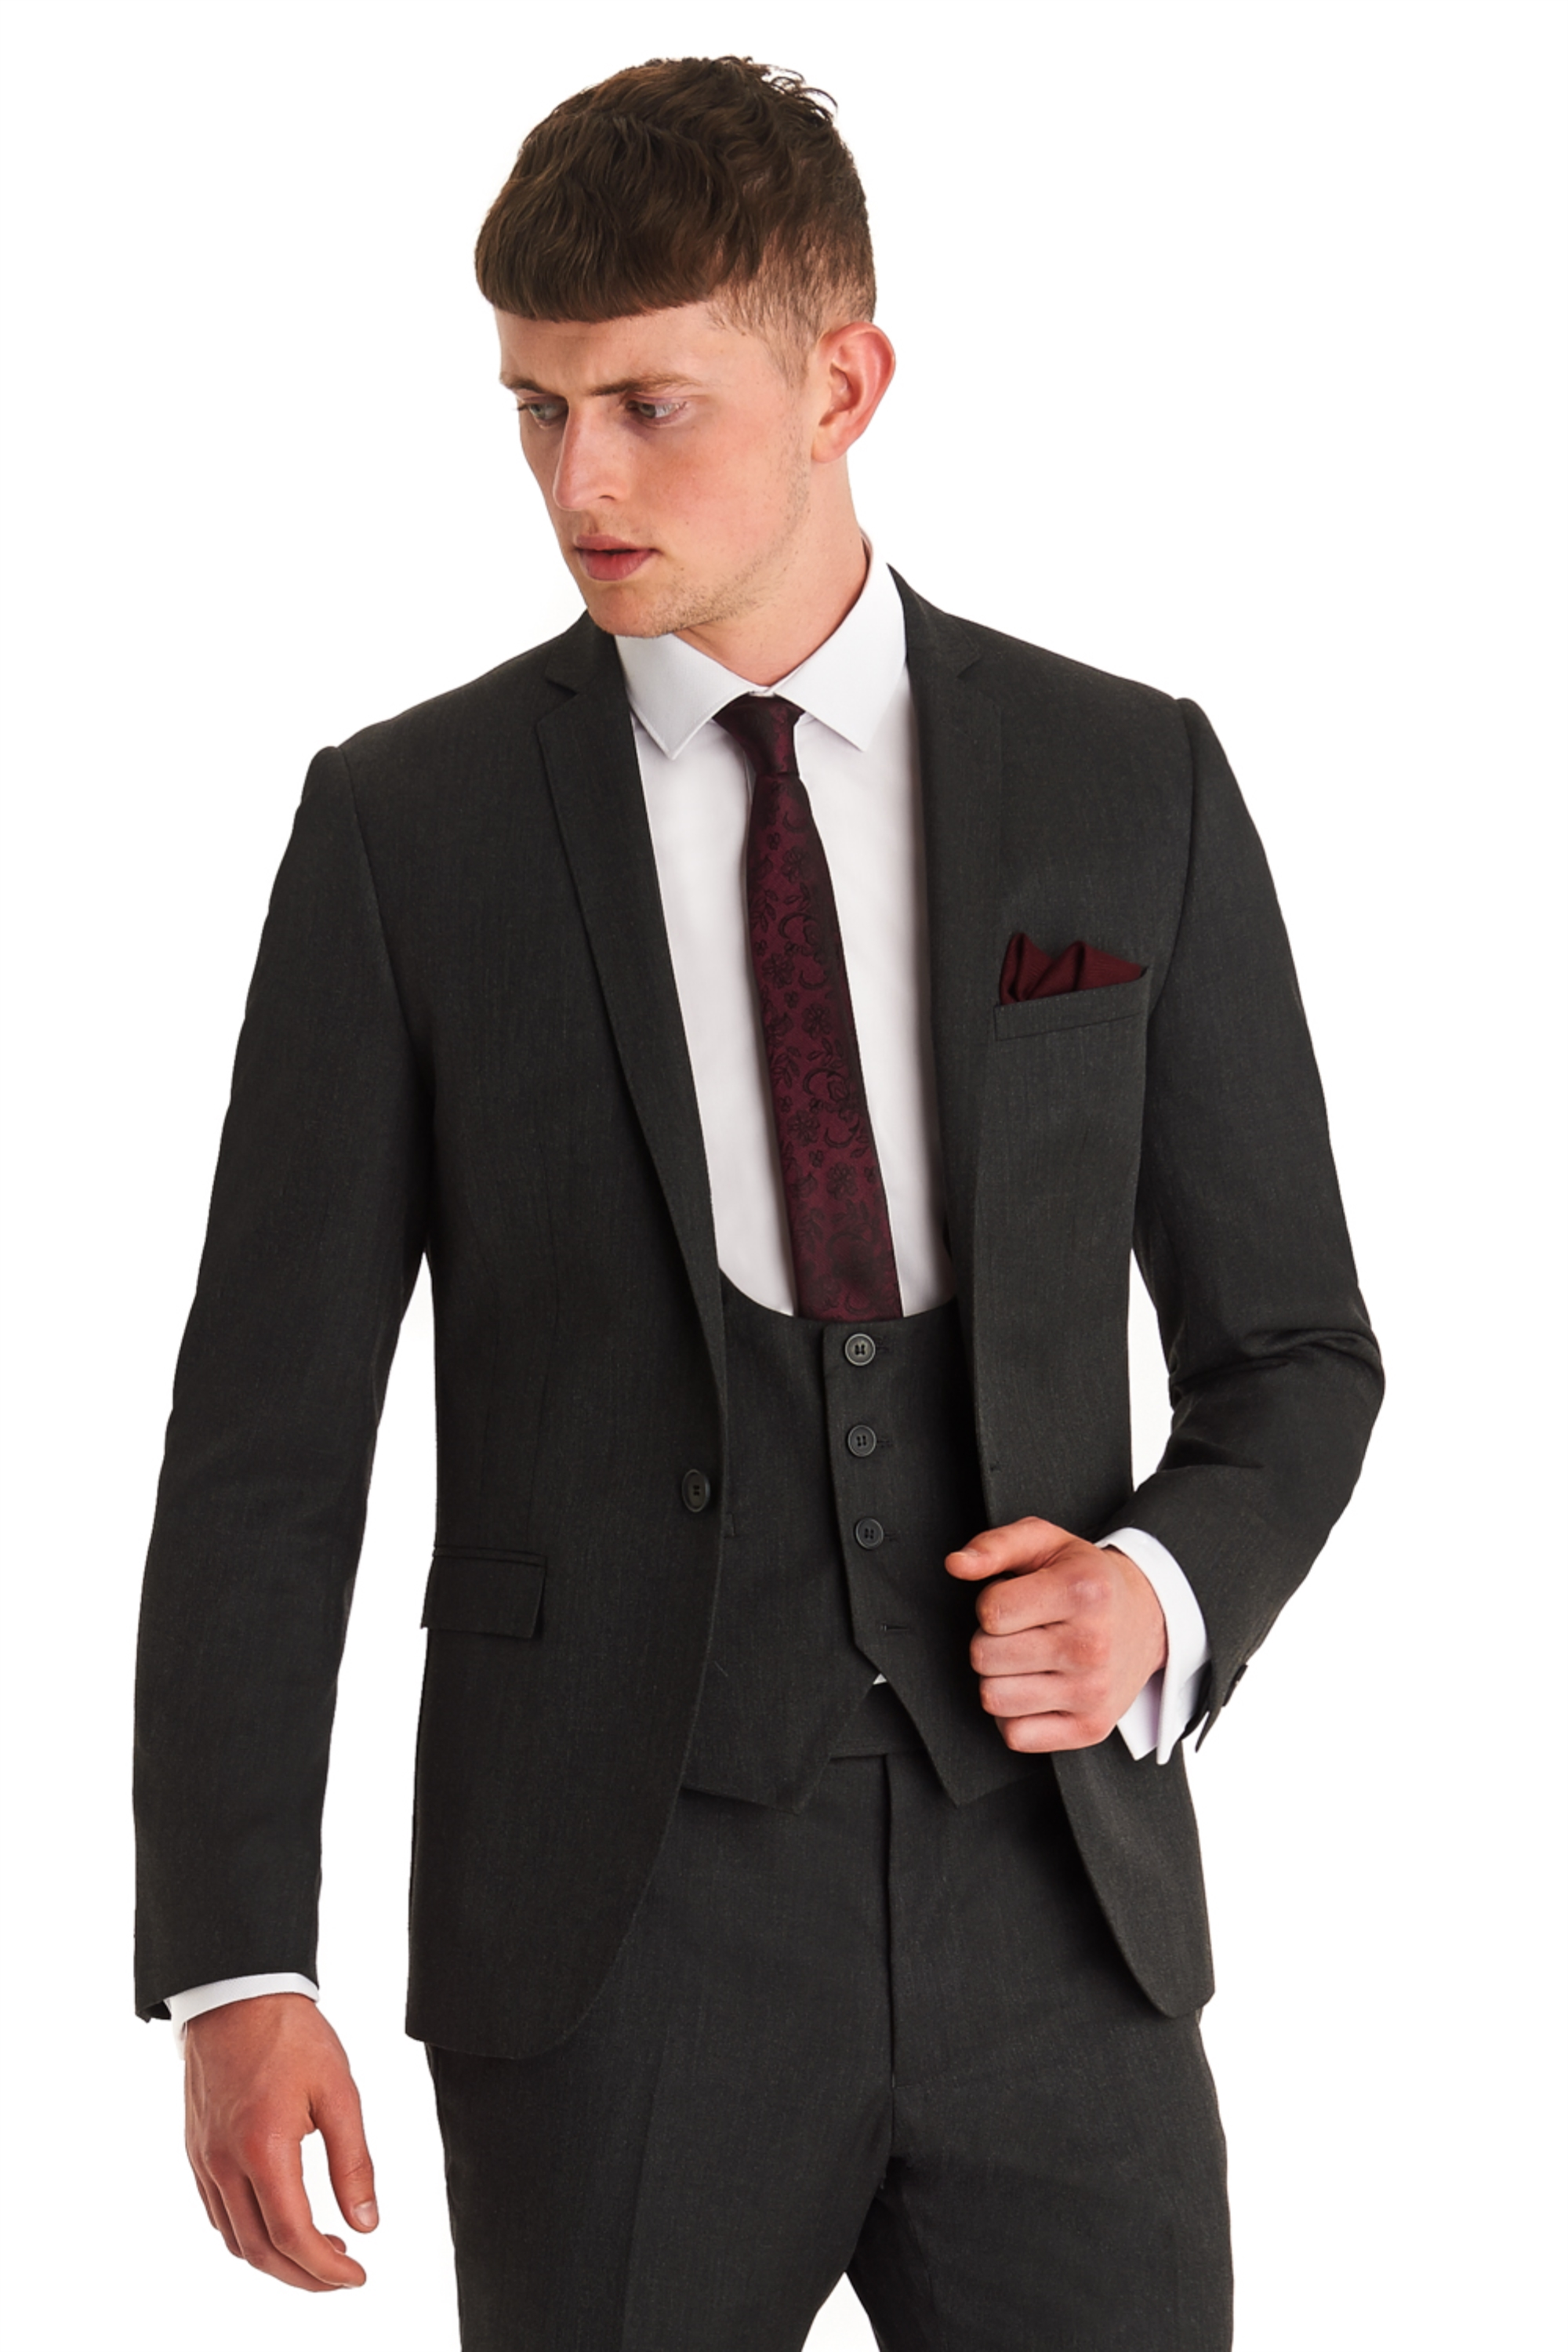 Charcoal blazer what color pants a charcoal blazer combinations charcoal blazer what color pants collection of business casual men s charcoal blazers and the infant air max 90 grey white leather clothes they go with including dress shirts, chinos, wool pants, jeans, dress shoes and.